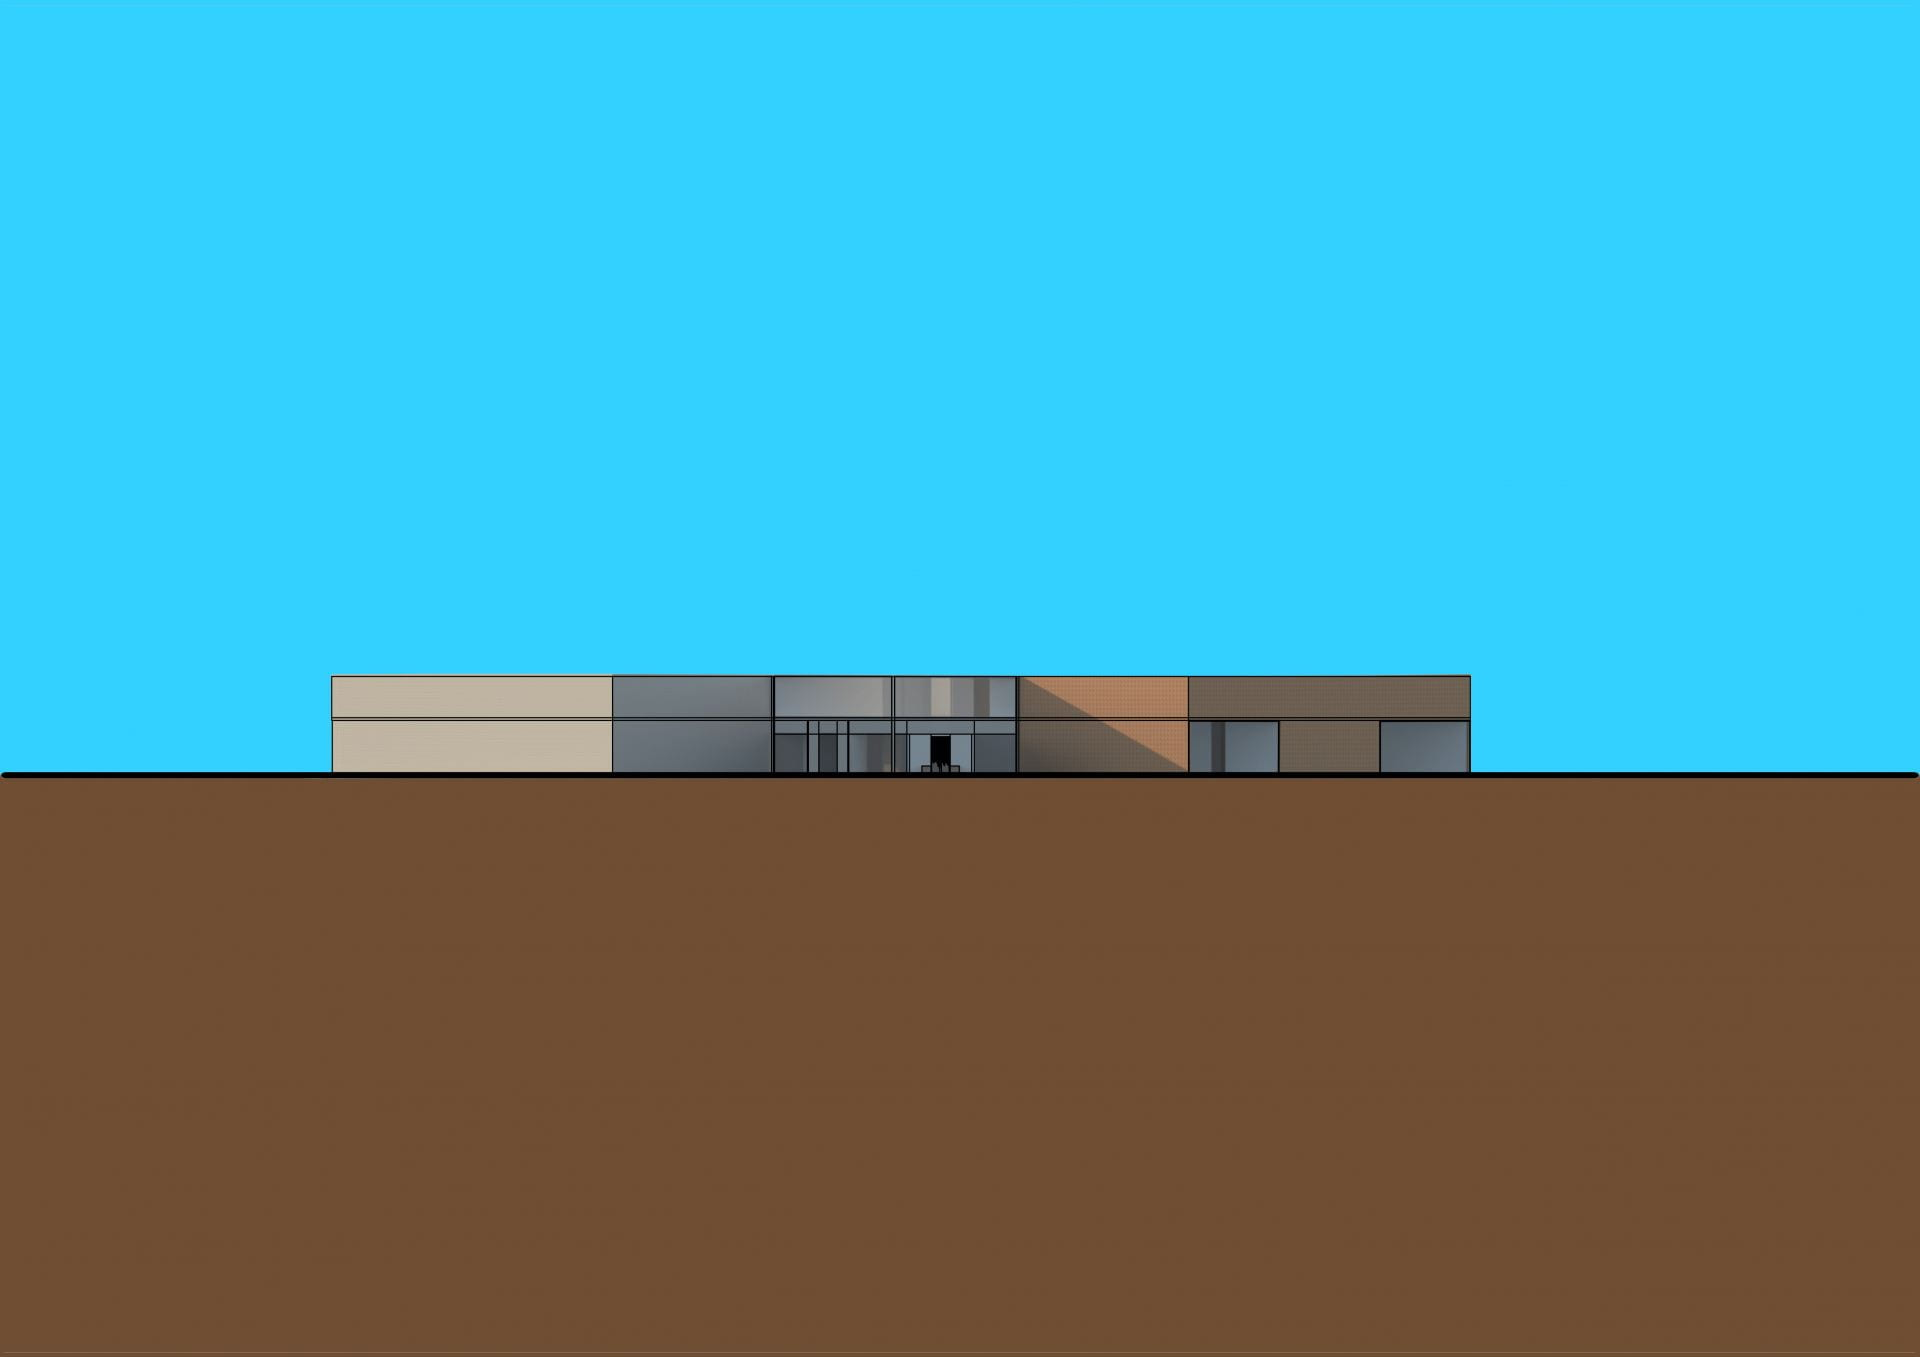 Elevation of my building.